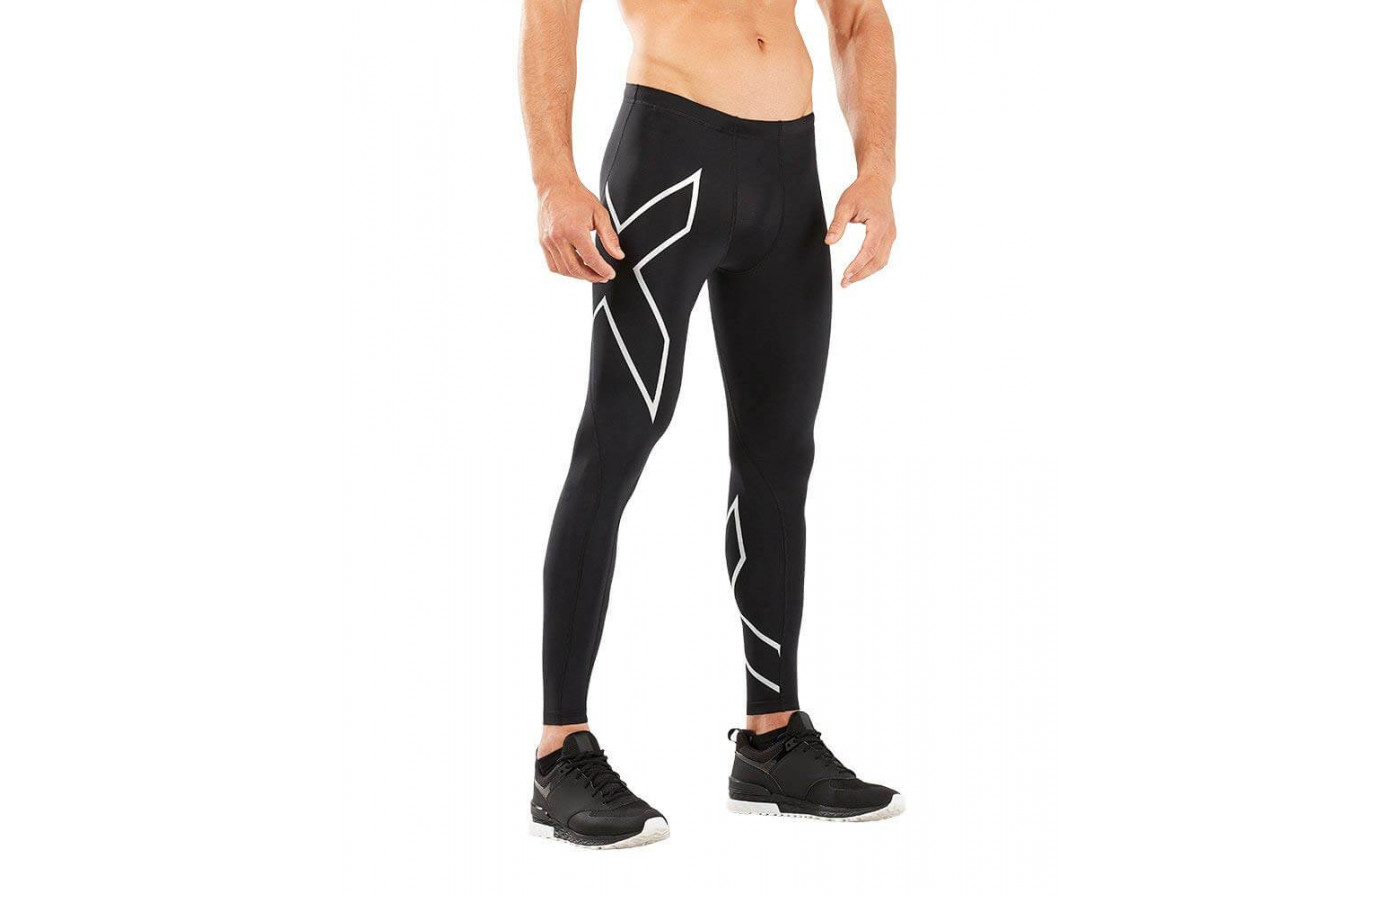 The 2XU Compression Tights are made from a mixture of nylon and elastane.